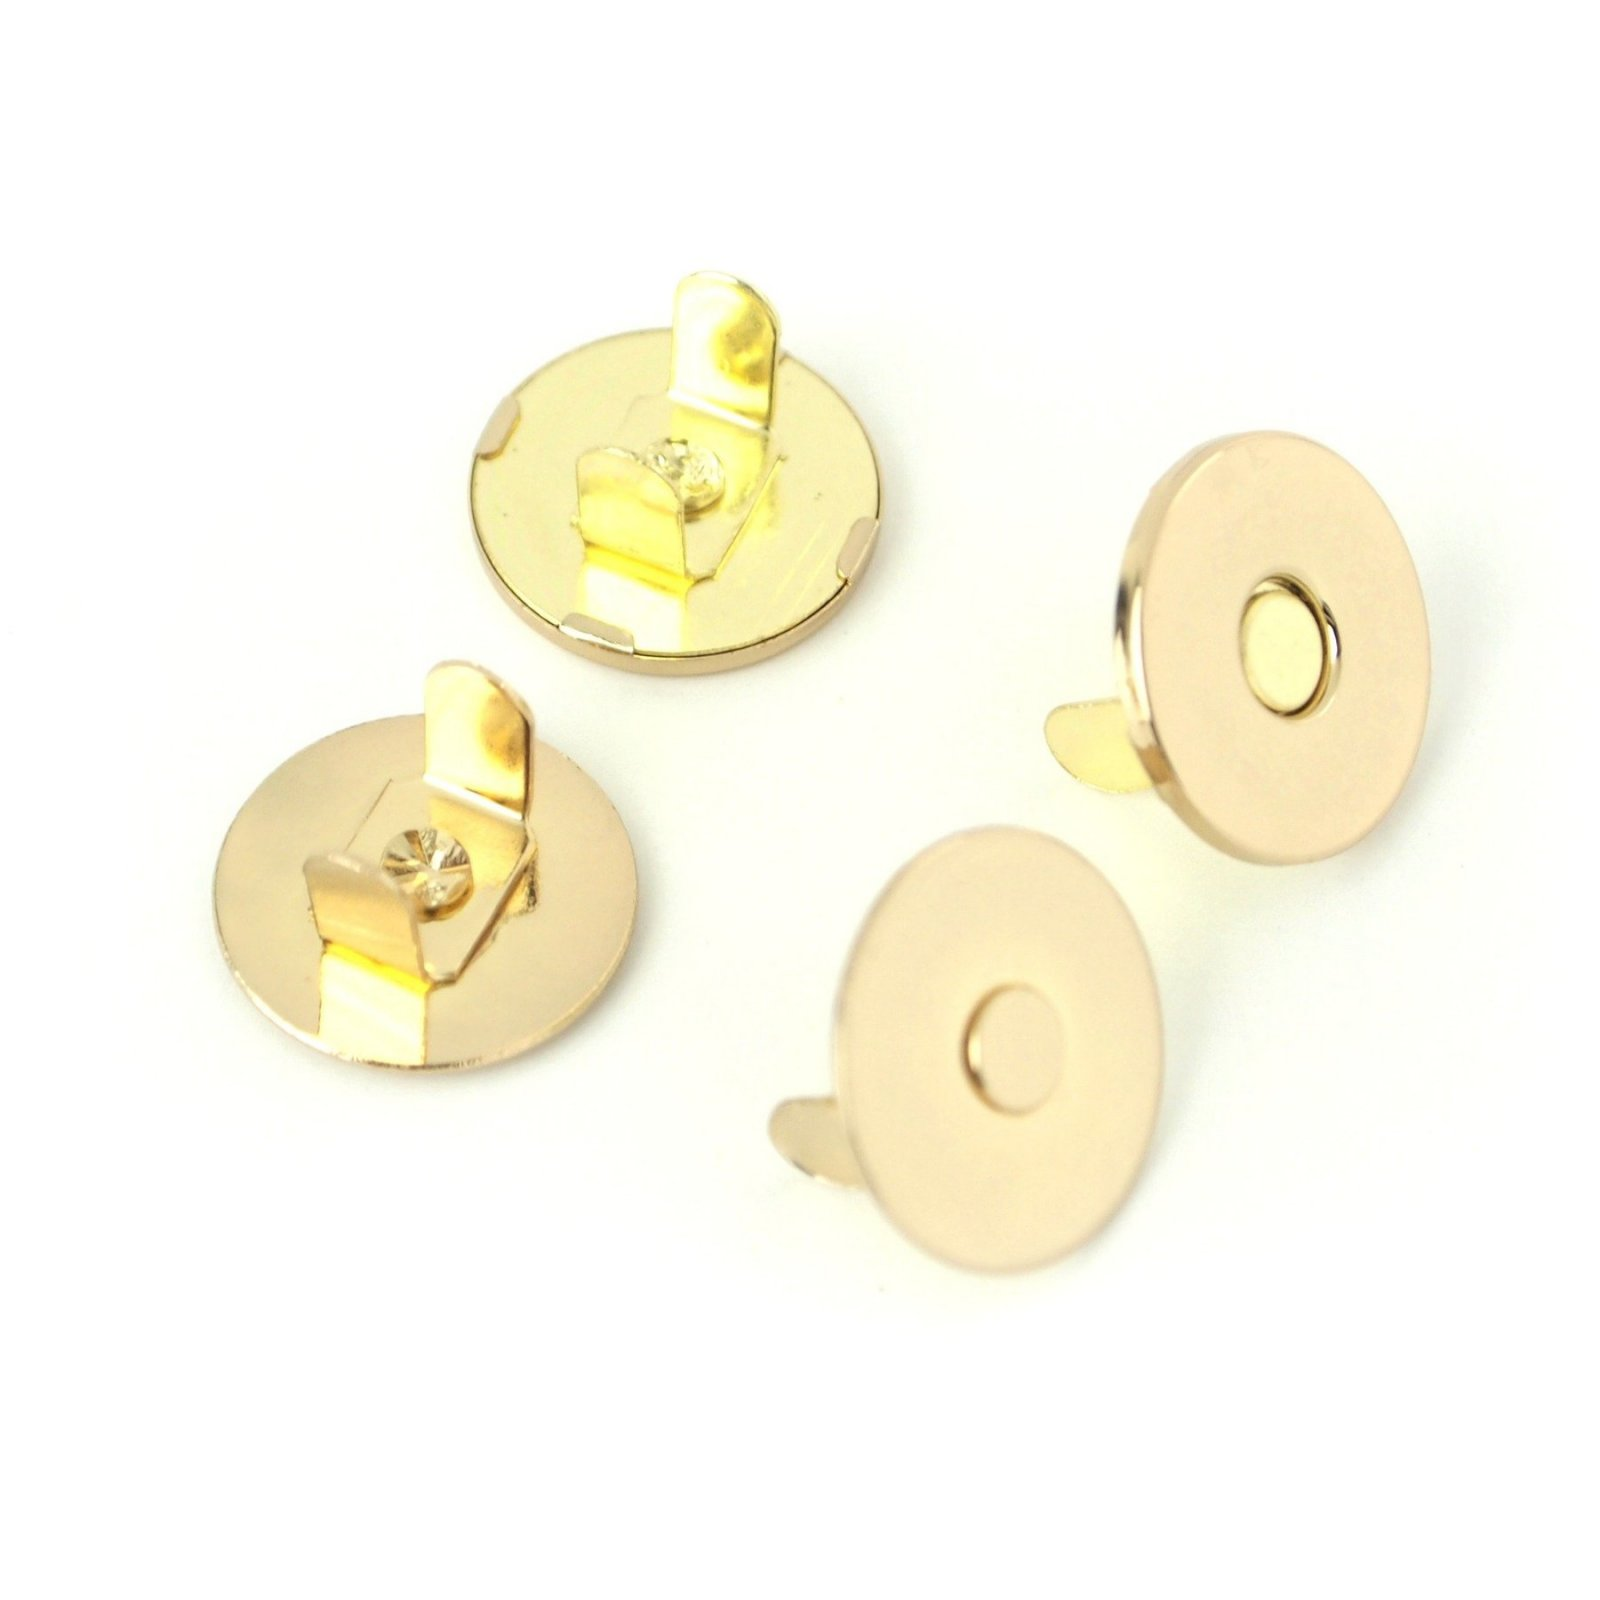 Sallie Tomato - 3/4 Inch Magnetic Snaps - Gold